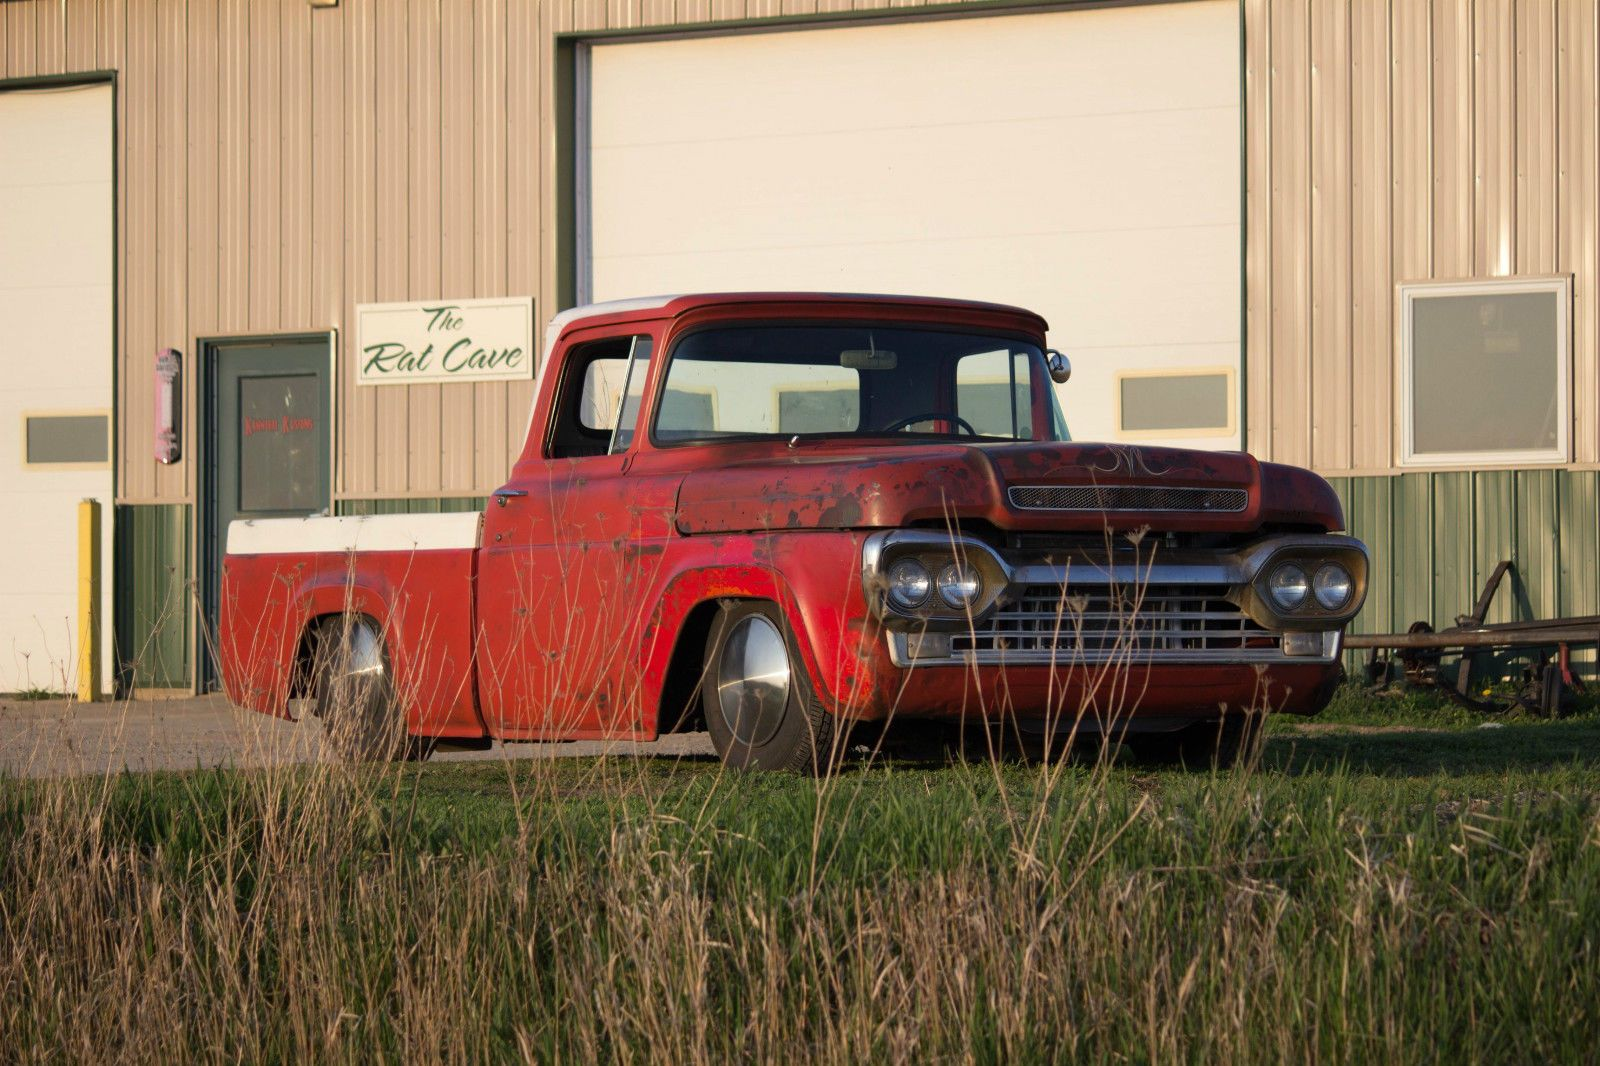 1955 ford f100 trucks for sale used cars on oodle autos post - 1960 Ford F 100 Truck Specs F100 Pinterest Ford Ford Trucks And Cars